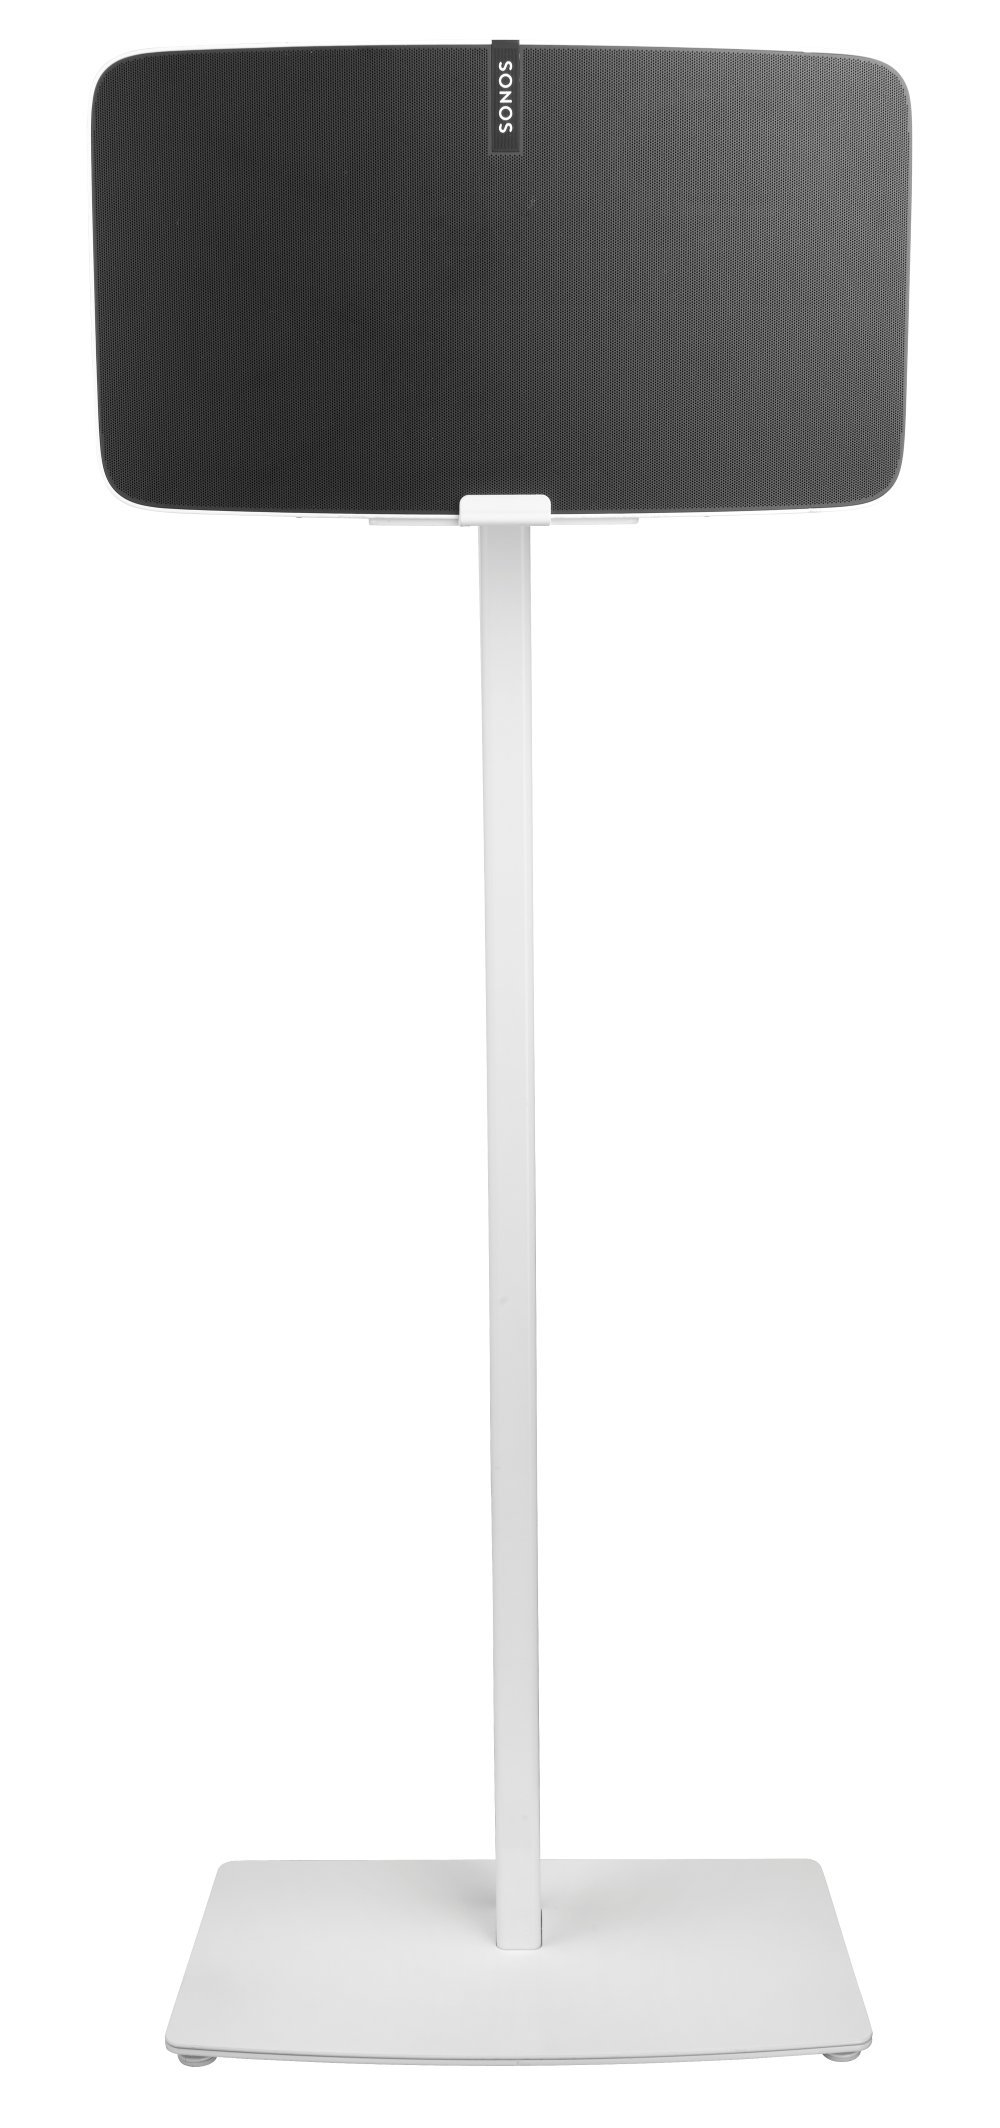 Cavus Floor Stand Suitable for Sonos Play:5 Speakers ( 2nd gen) ( Horizontal) (White, Play:5 Single) by Cavus